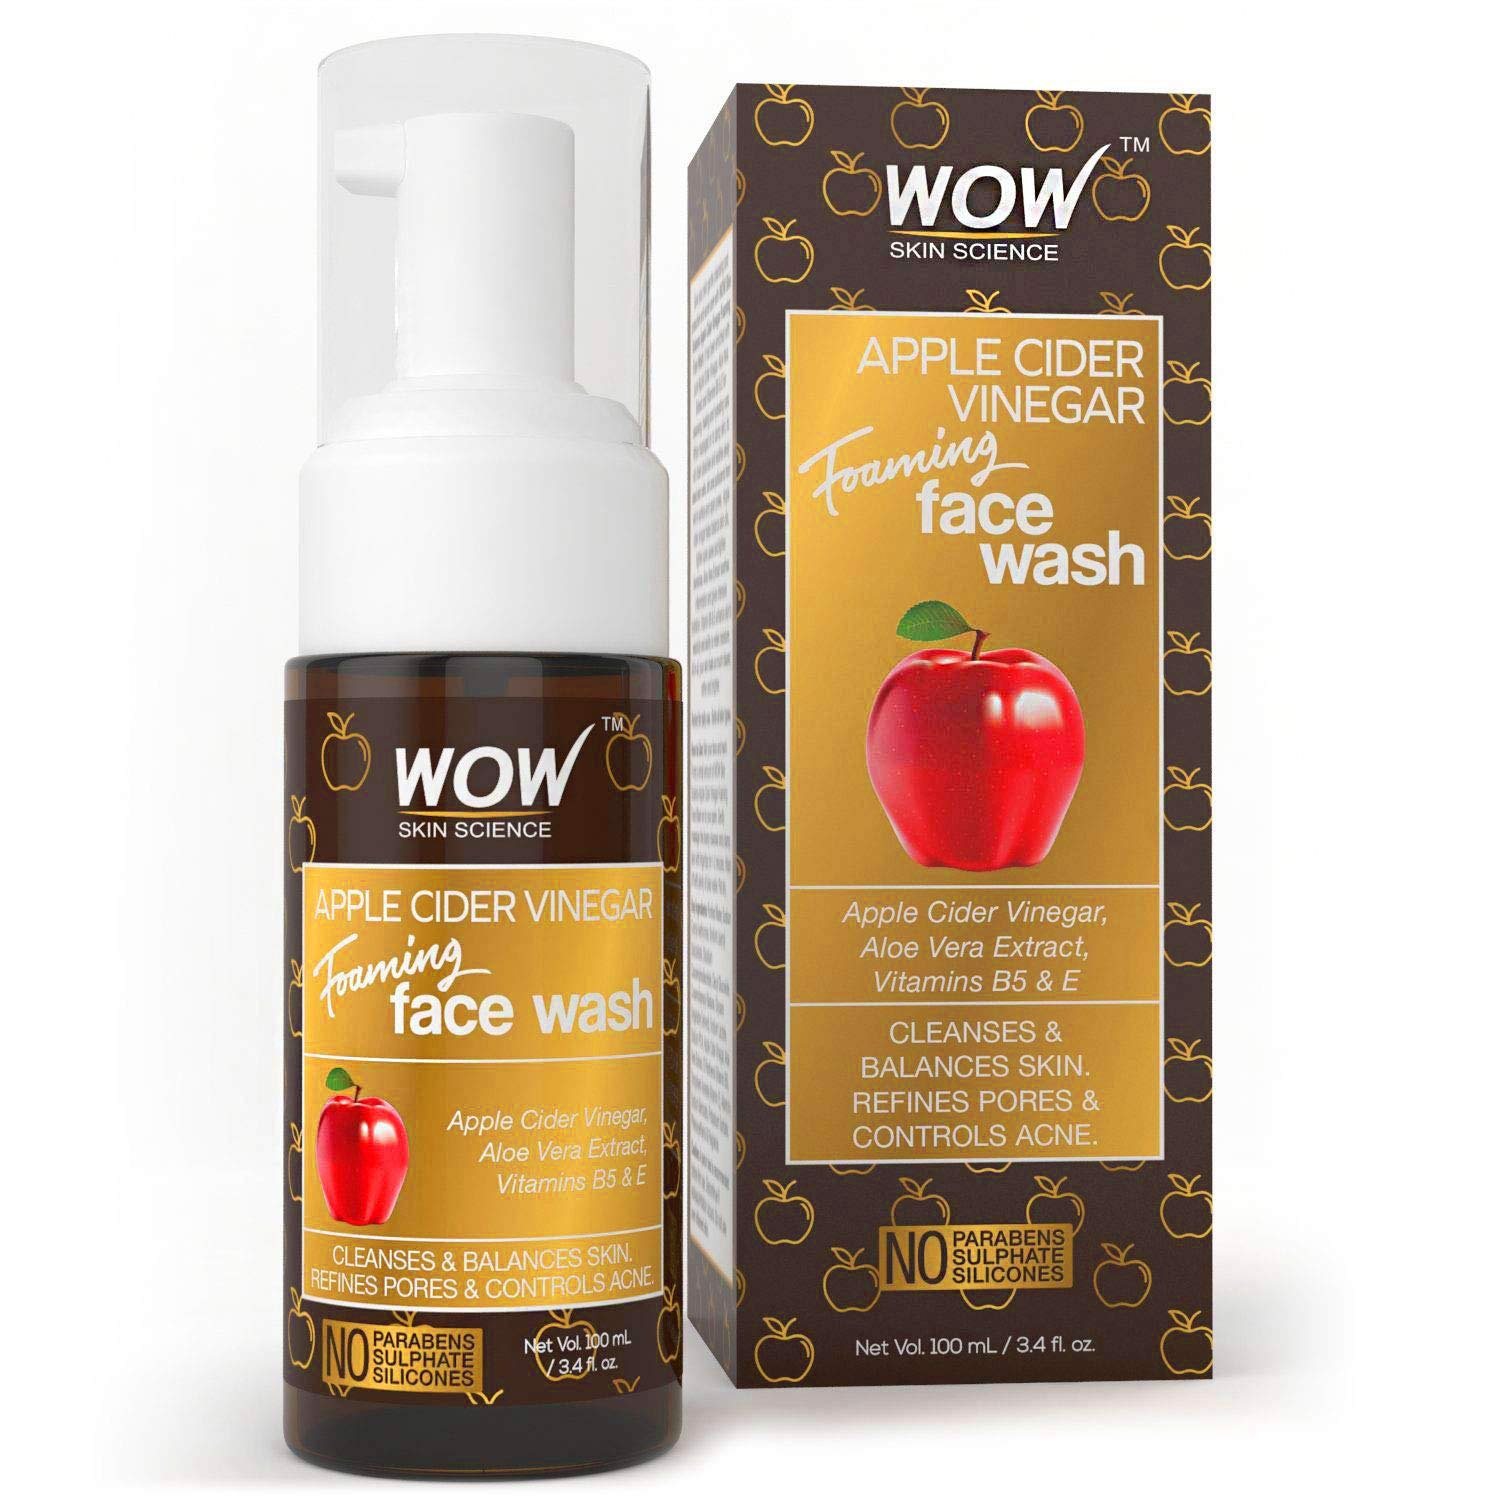 WOW Apple Cider Vinegar Foaming Face Wash Cleanser - Normal, Dry & Oily Skin - Heal, Hydrate For Soft, Clear Skin - Remove Dirt, Oil & Makeup, Reduce Acne Breakouts - Men & Women - All Ages - 100 mL by BUYWOW (Image #1)